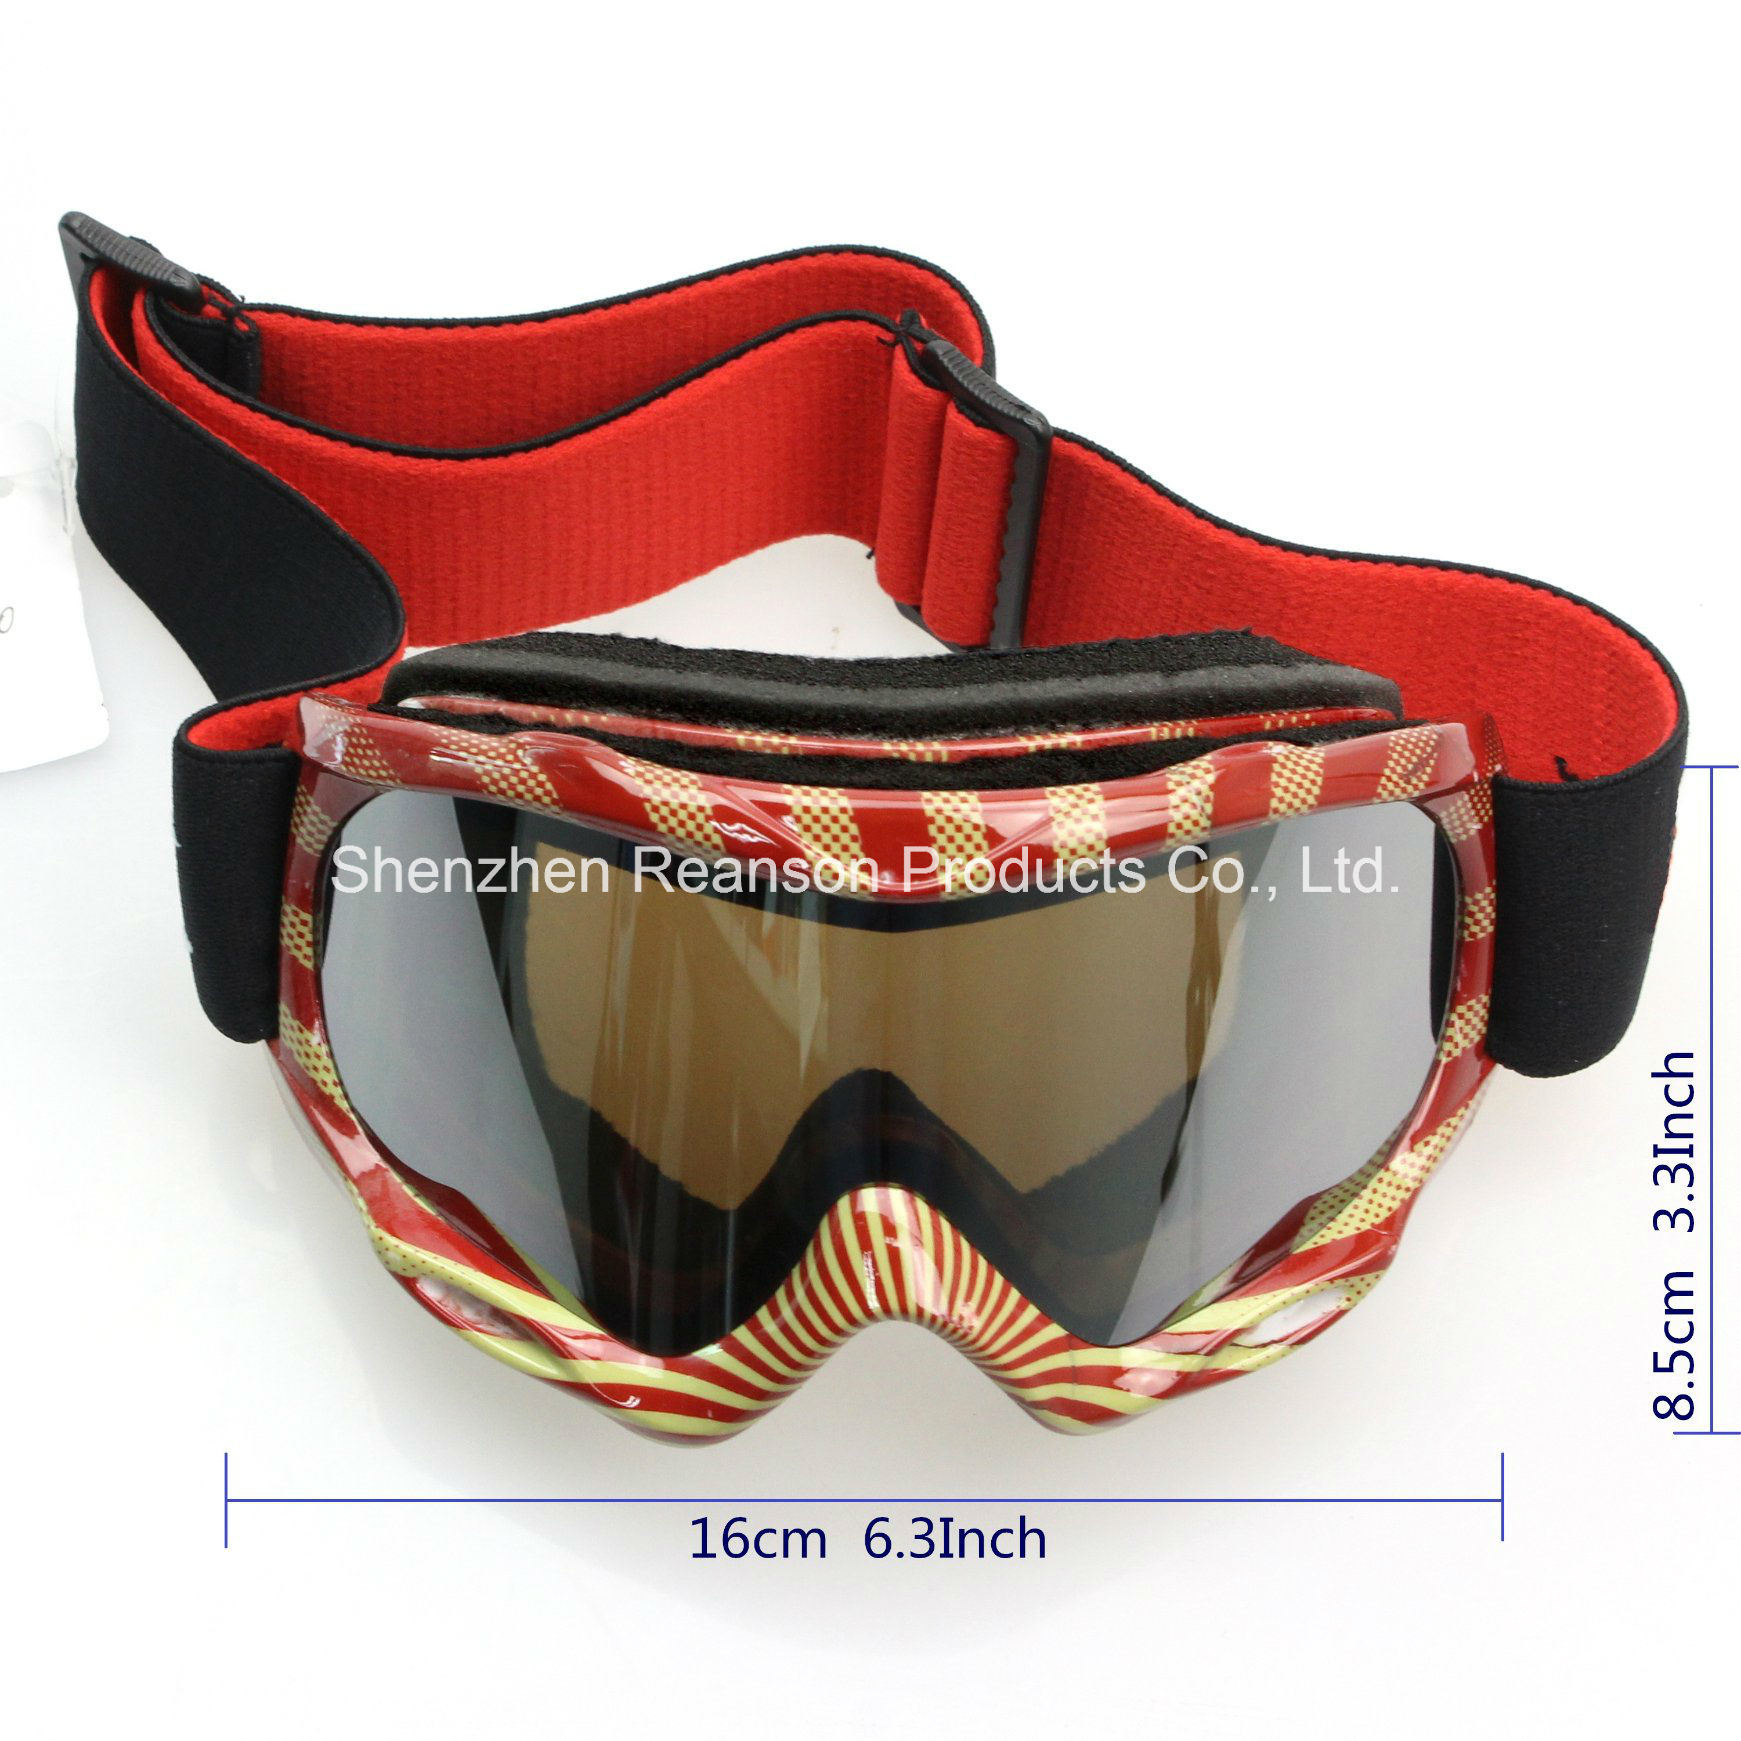 Reanson Youth Double Lenses Anti-Fog Skiing Goggles